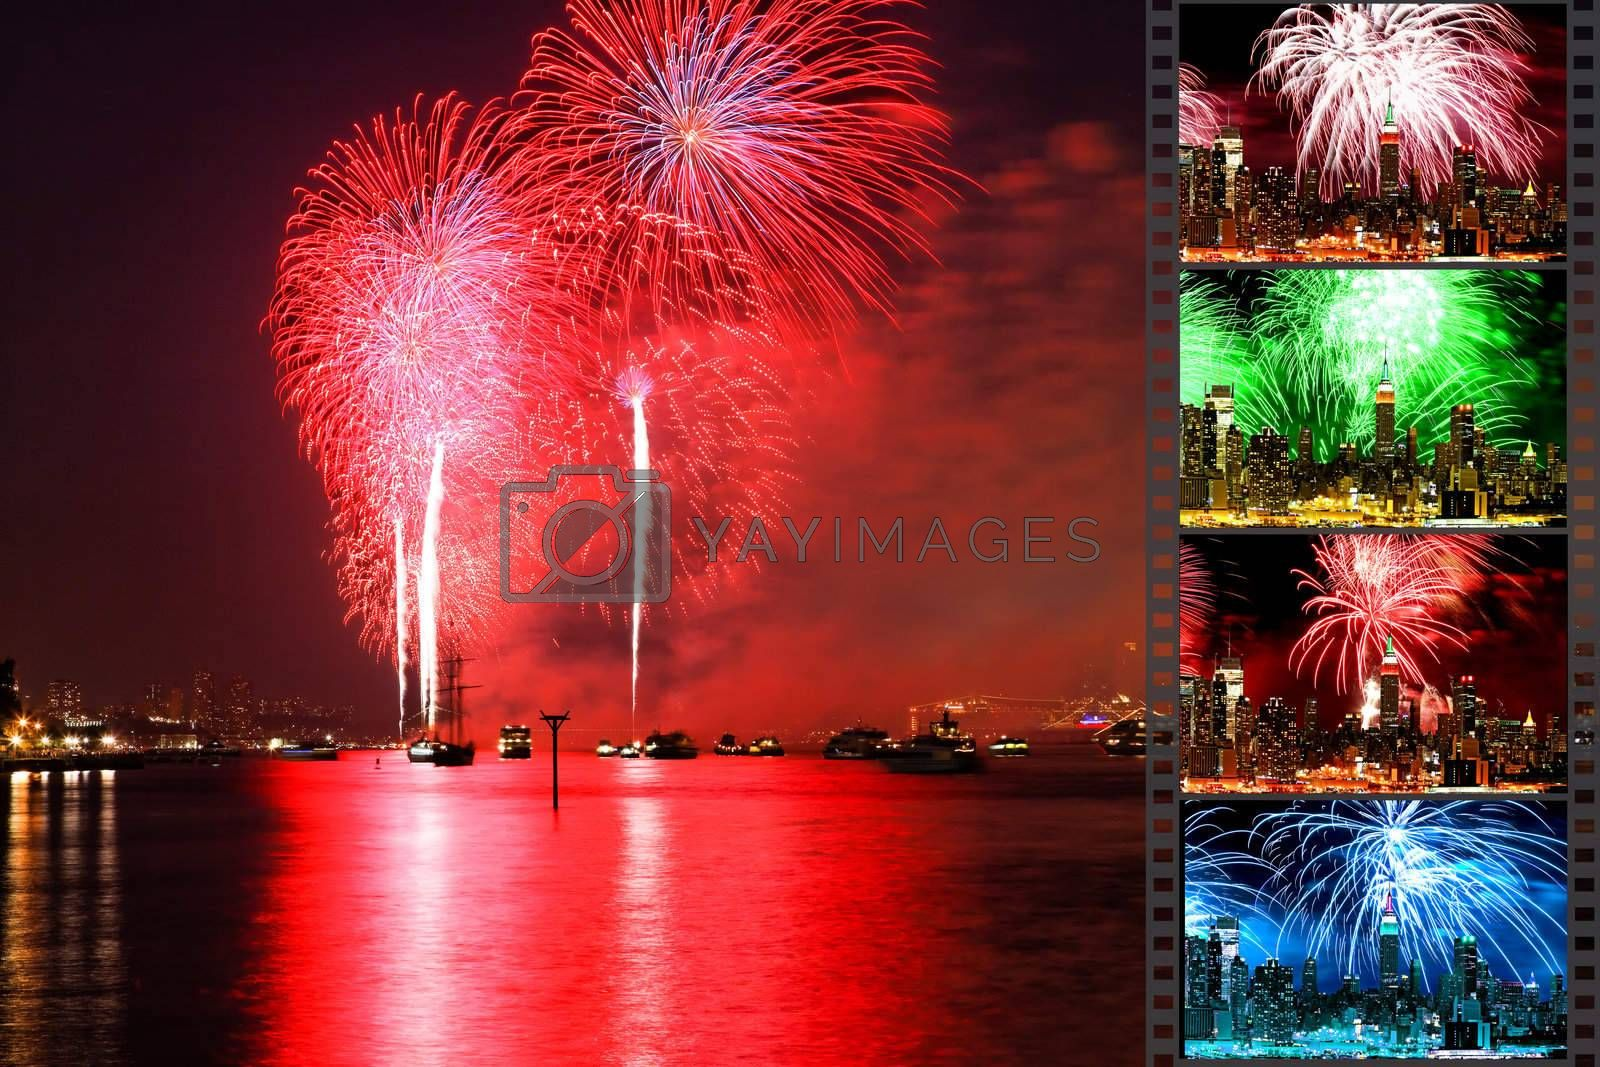 the Macy's 4th of July fireworks displays by gary718